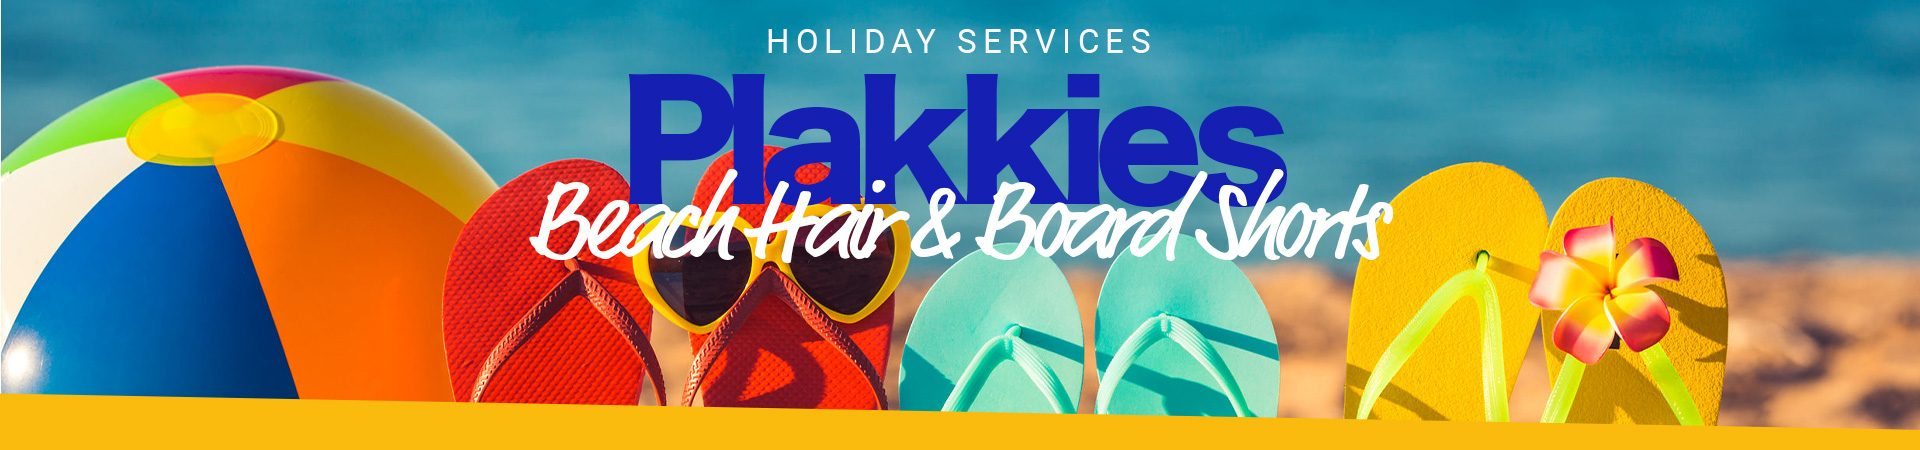 Holiday Services 2019